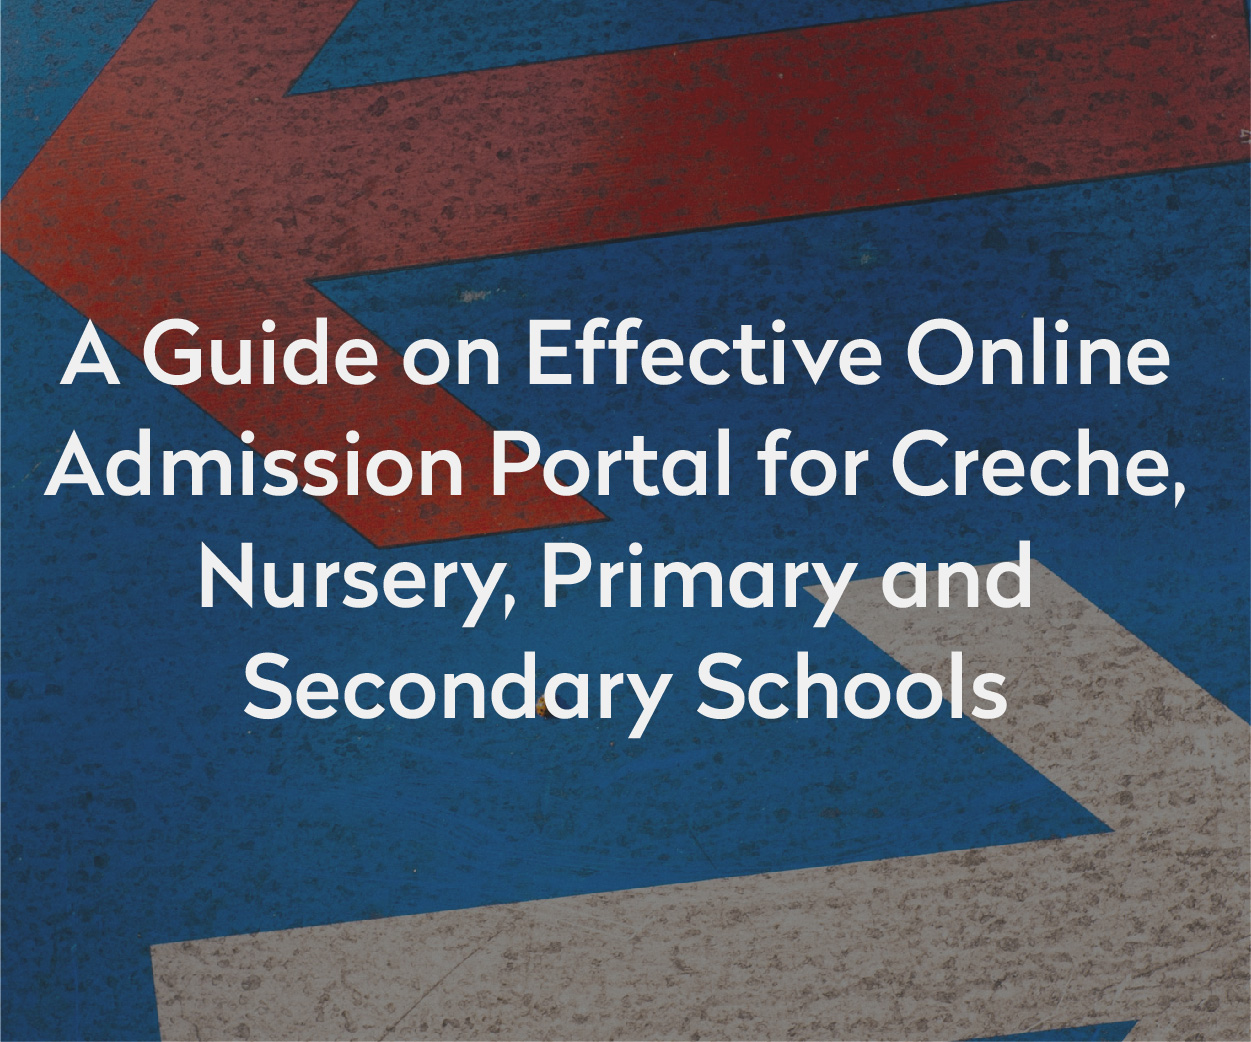 A Guide on Effective Online Admission Portal for Nursery, Primary and Secondary Schools